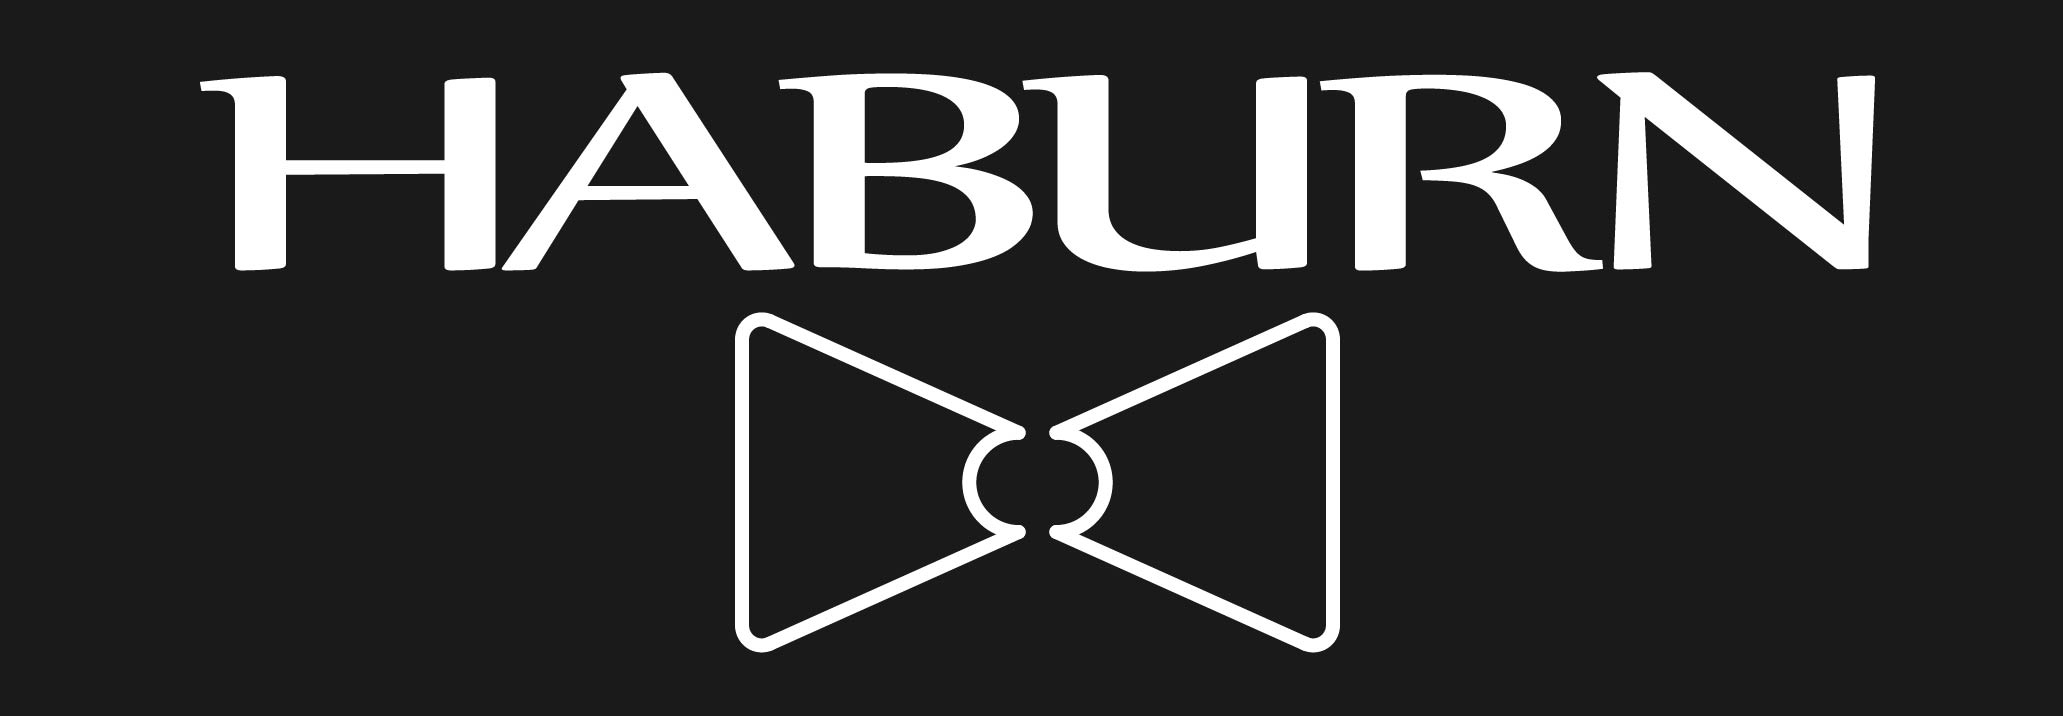 Haburn Knives - Handmade Stainless & Carbon Steel Knives and Tools